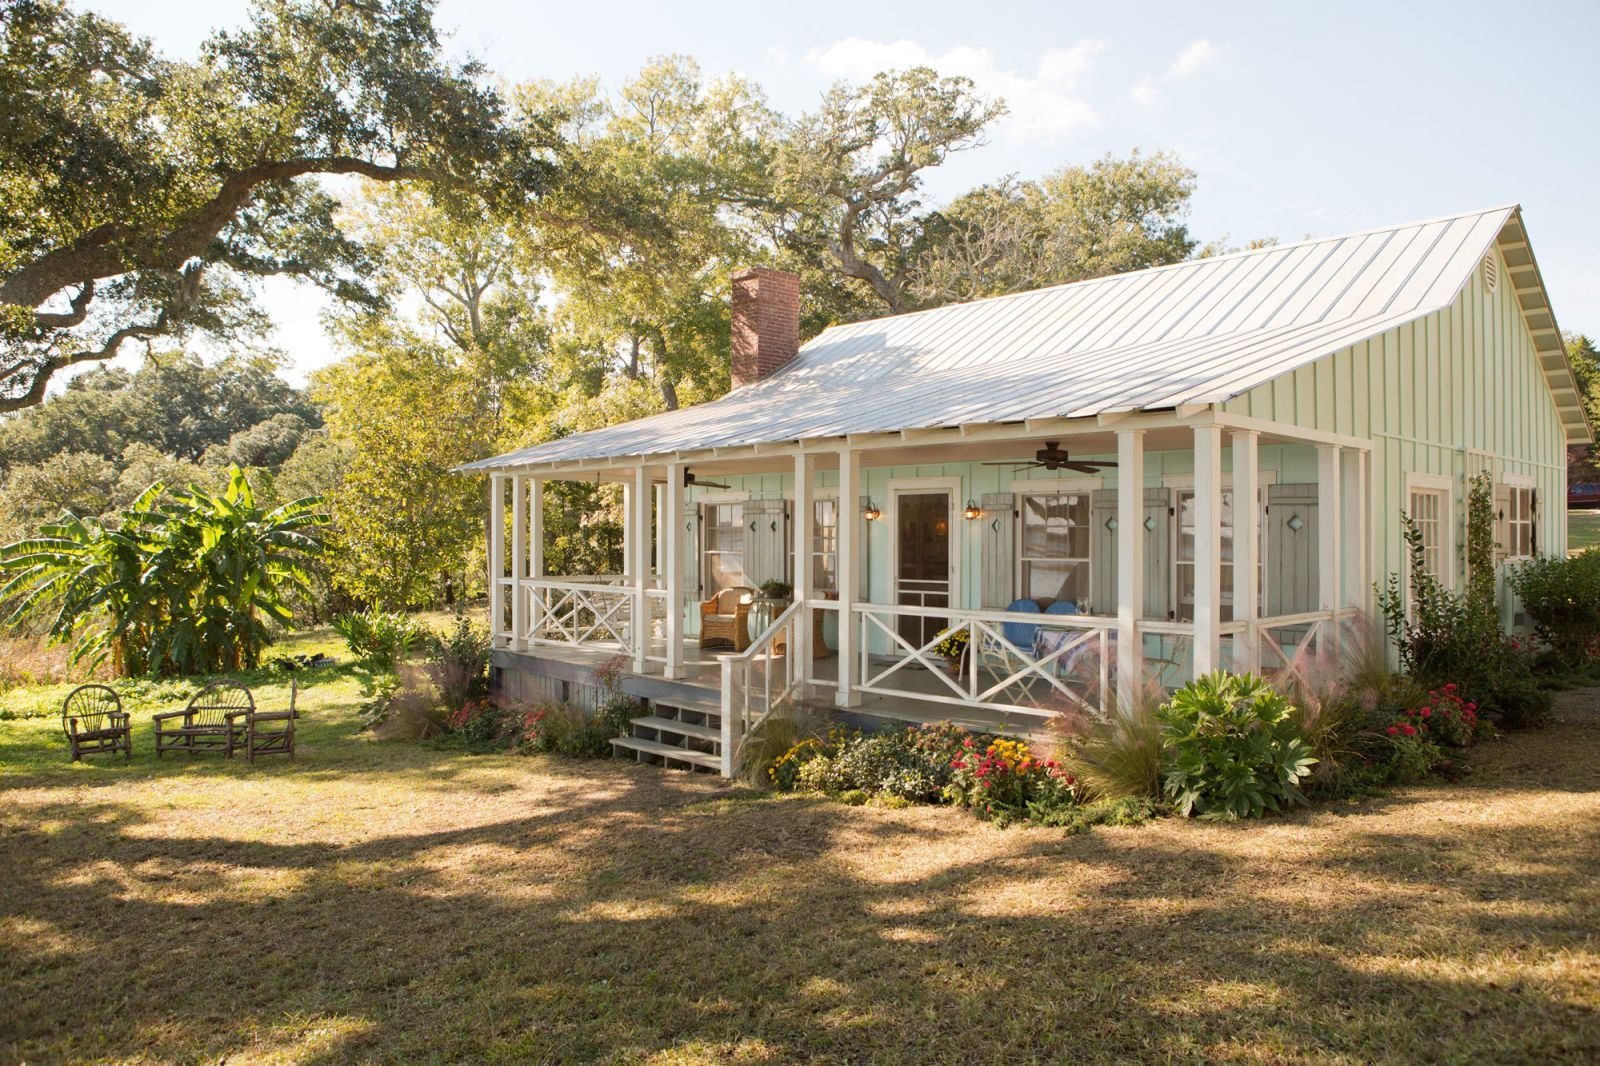 Get Ready To Fall In Love With The Home From Nicholas Sparks New